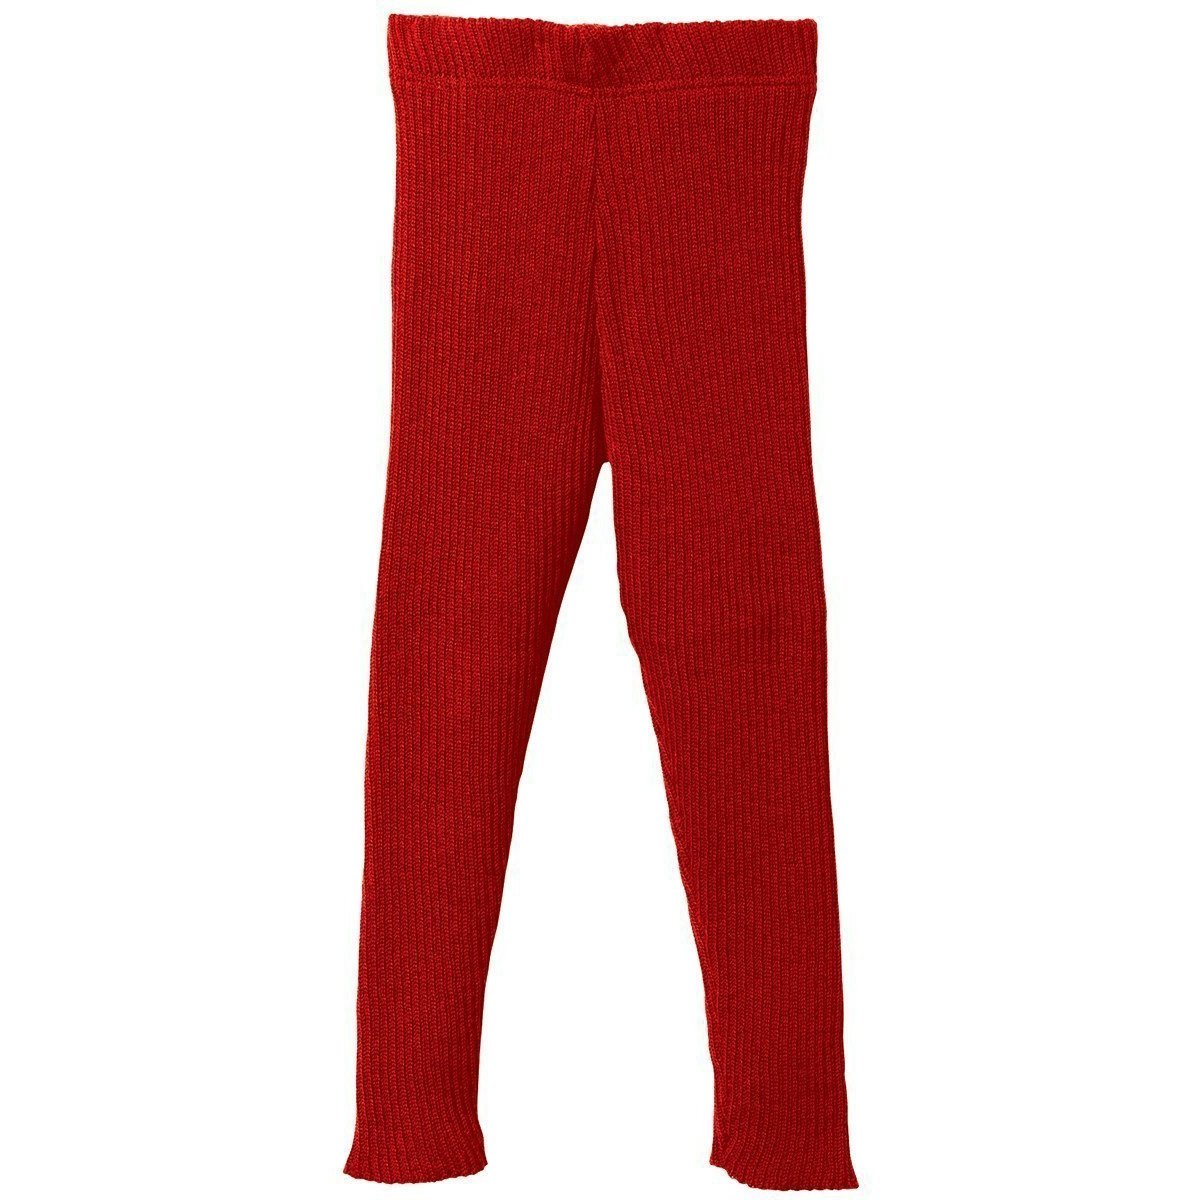 Disana 100% Organic Merino Wool Knitted Leggings Made in Germany (9-10 Years, Red)